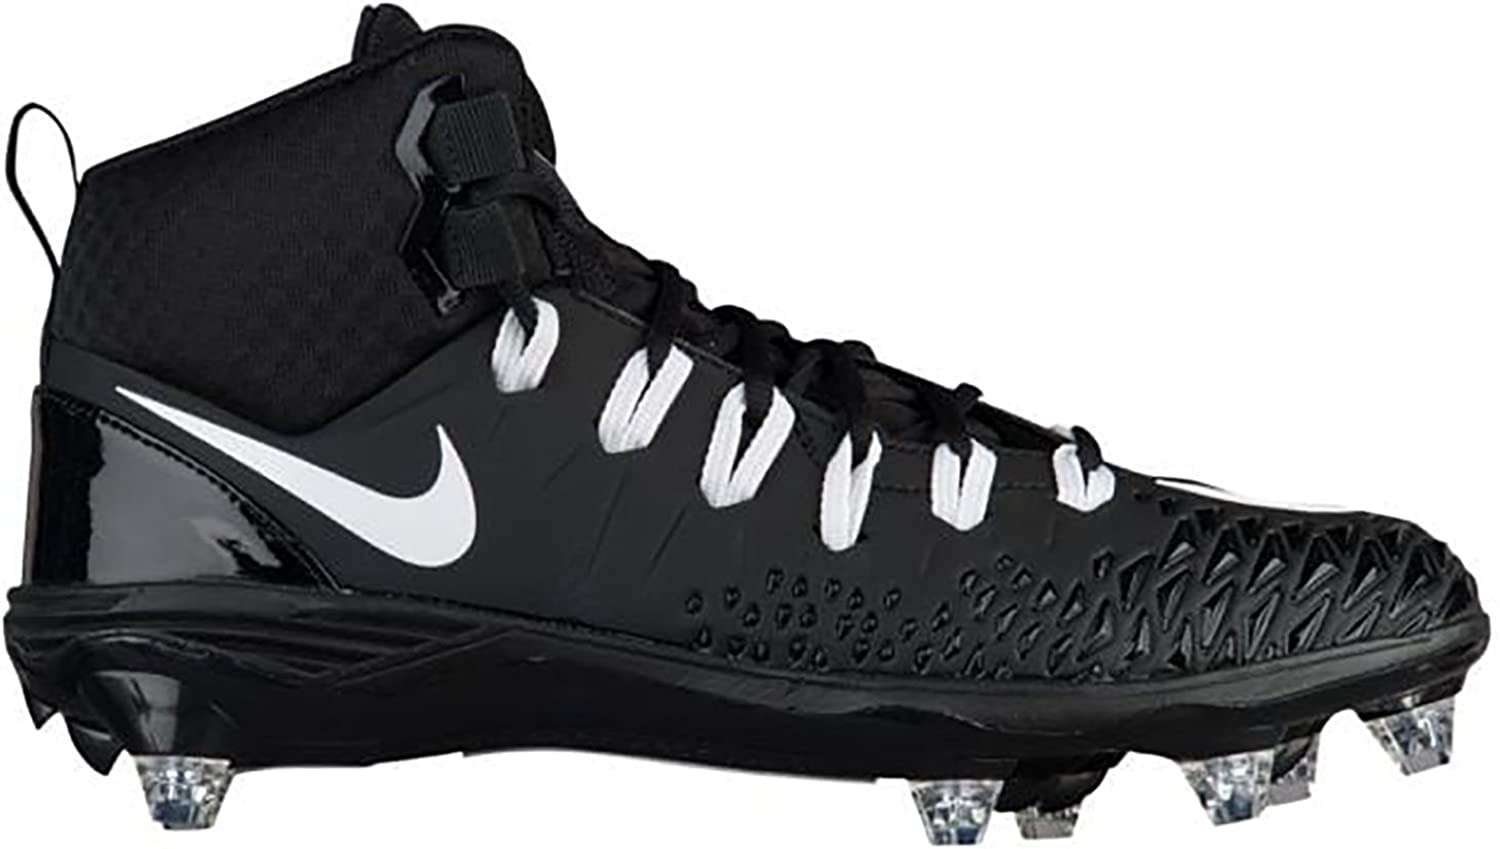 Nike Force Savage Pro D Football Cleats shoes Mens Size 10 (Black, White)